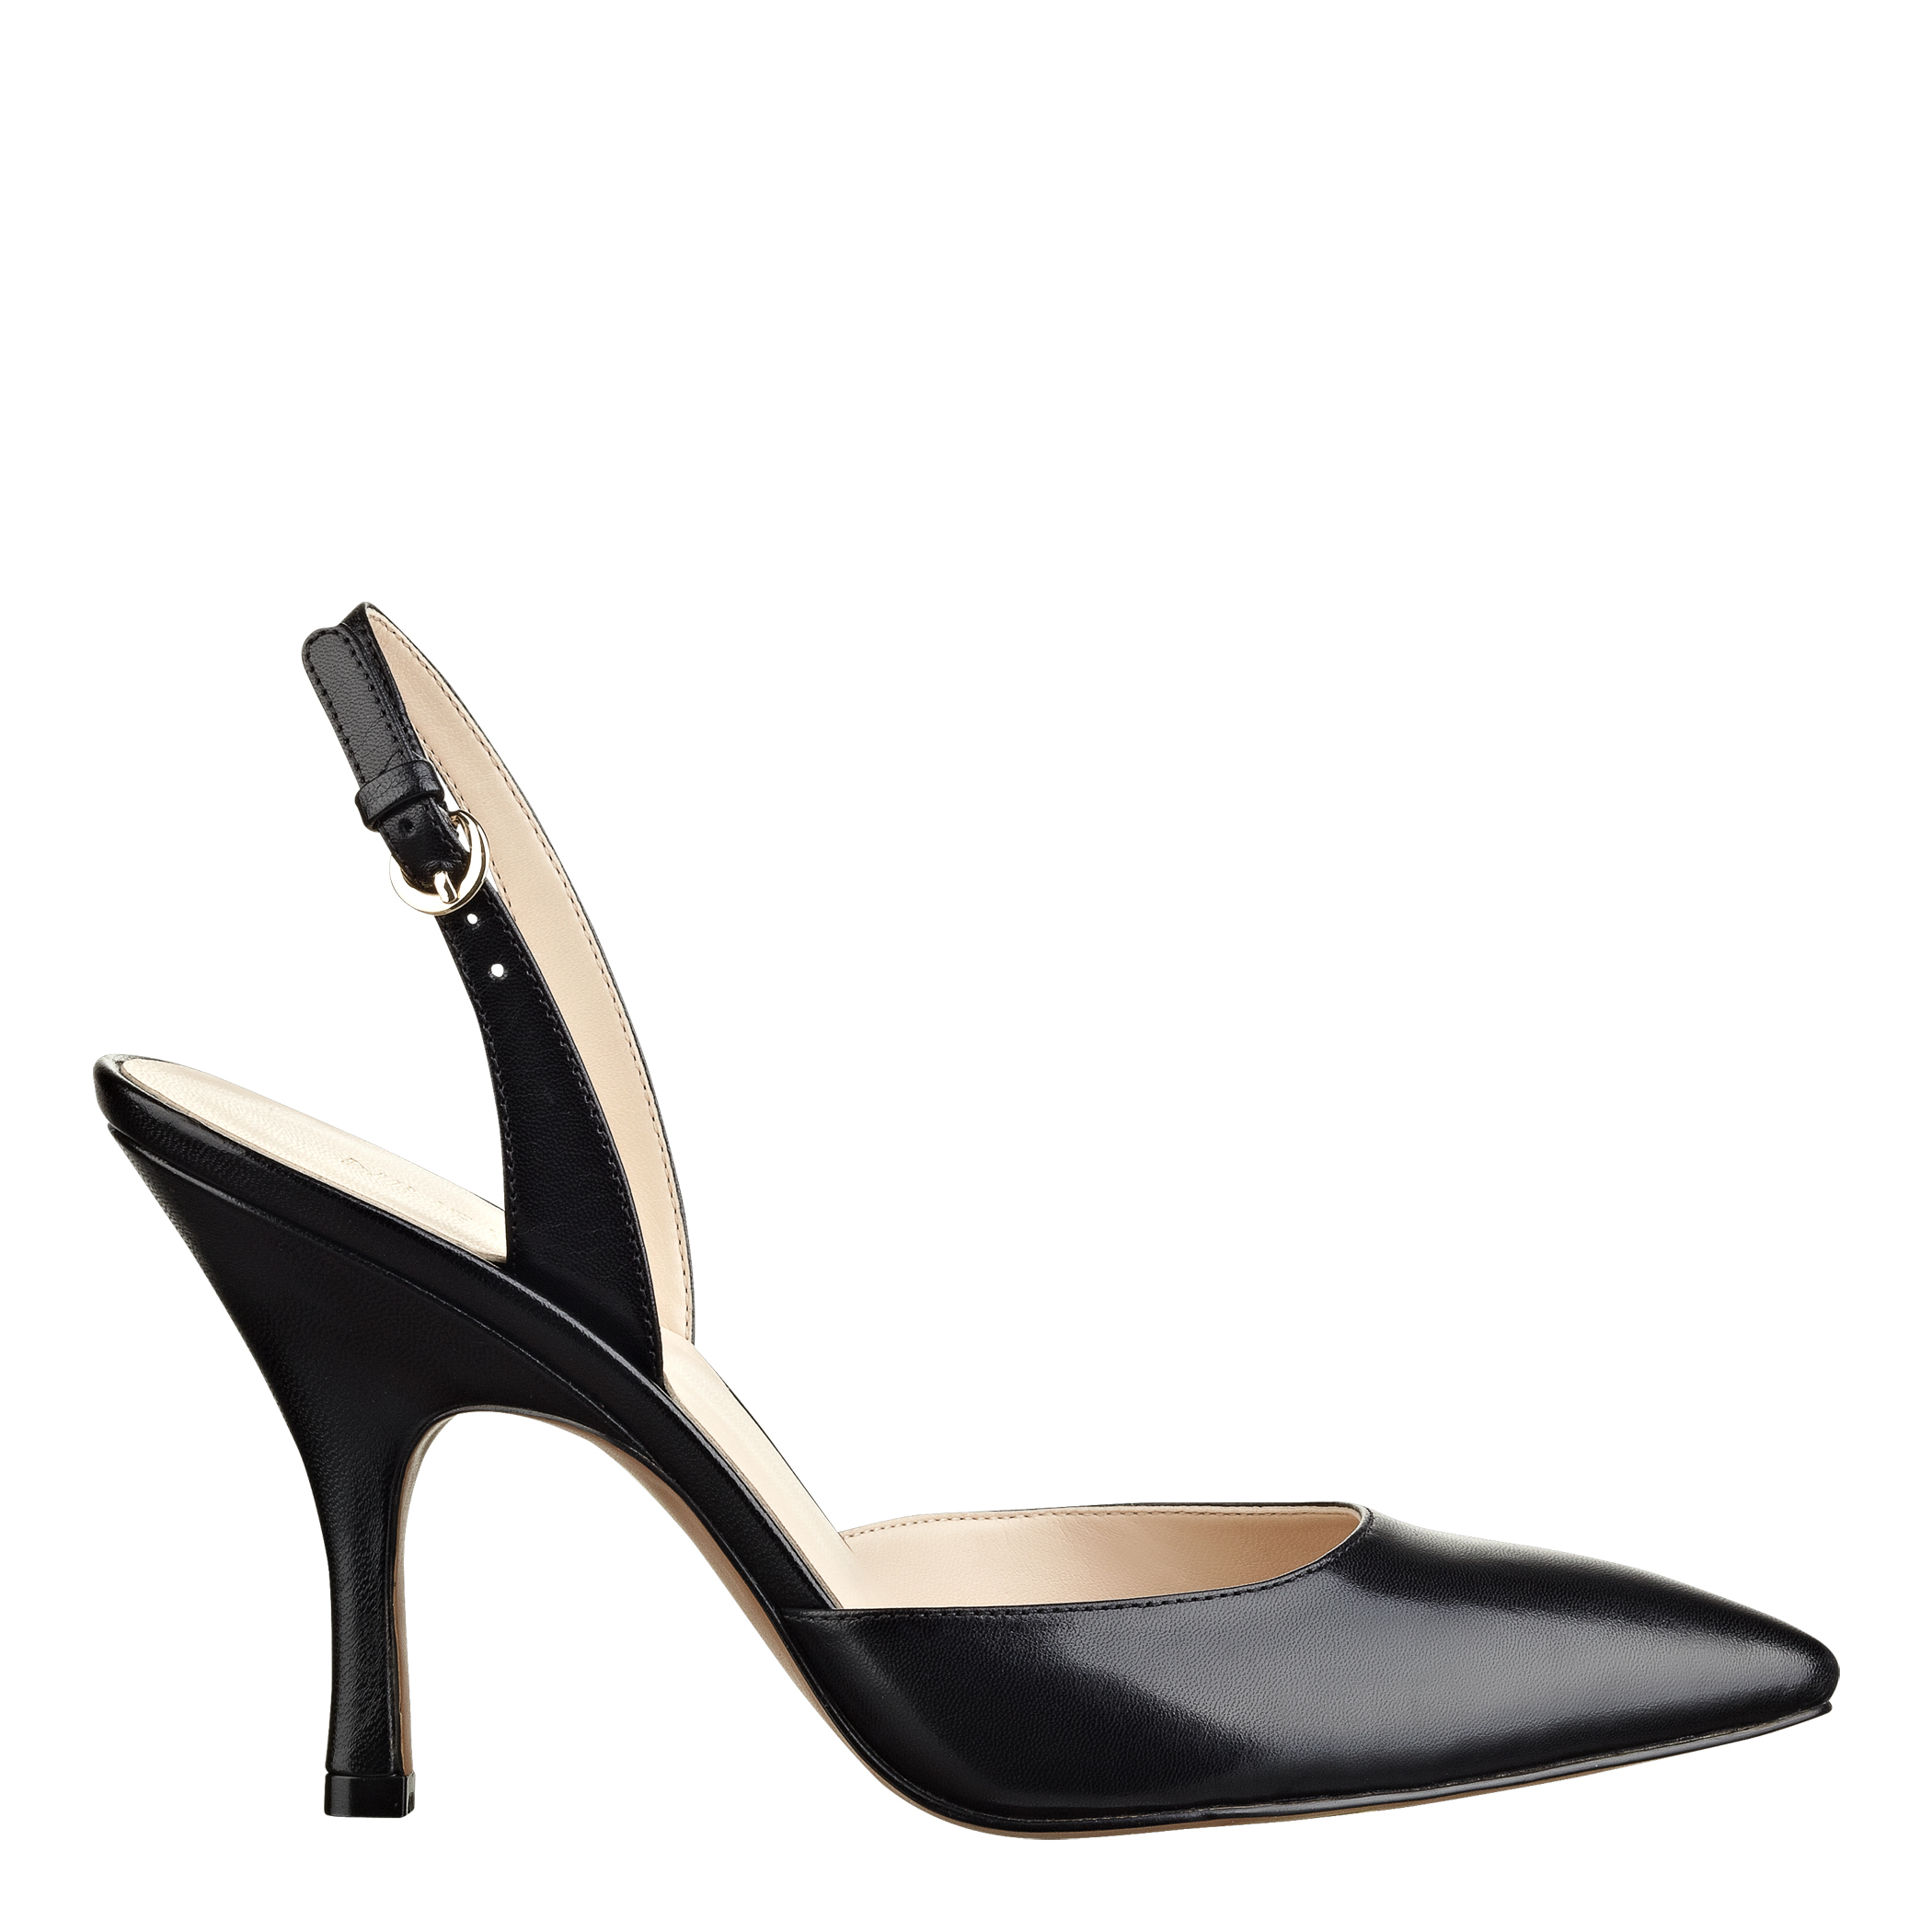 Shop J'Adior Velvet Slingback Pump, Black from Dior at Bergdorf Goodman, where you'll find free shipping on a fantastic selection of unparalleled designer fashion.